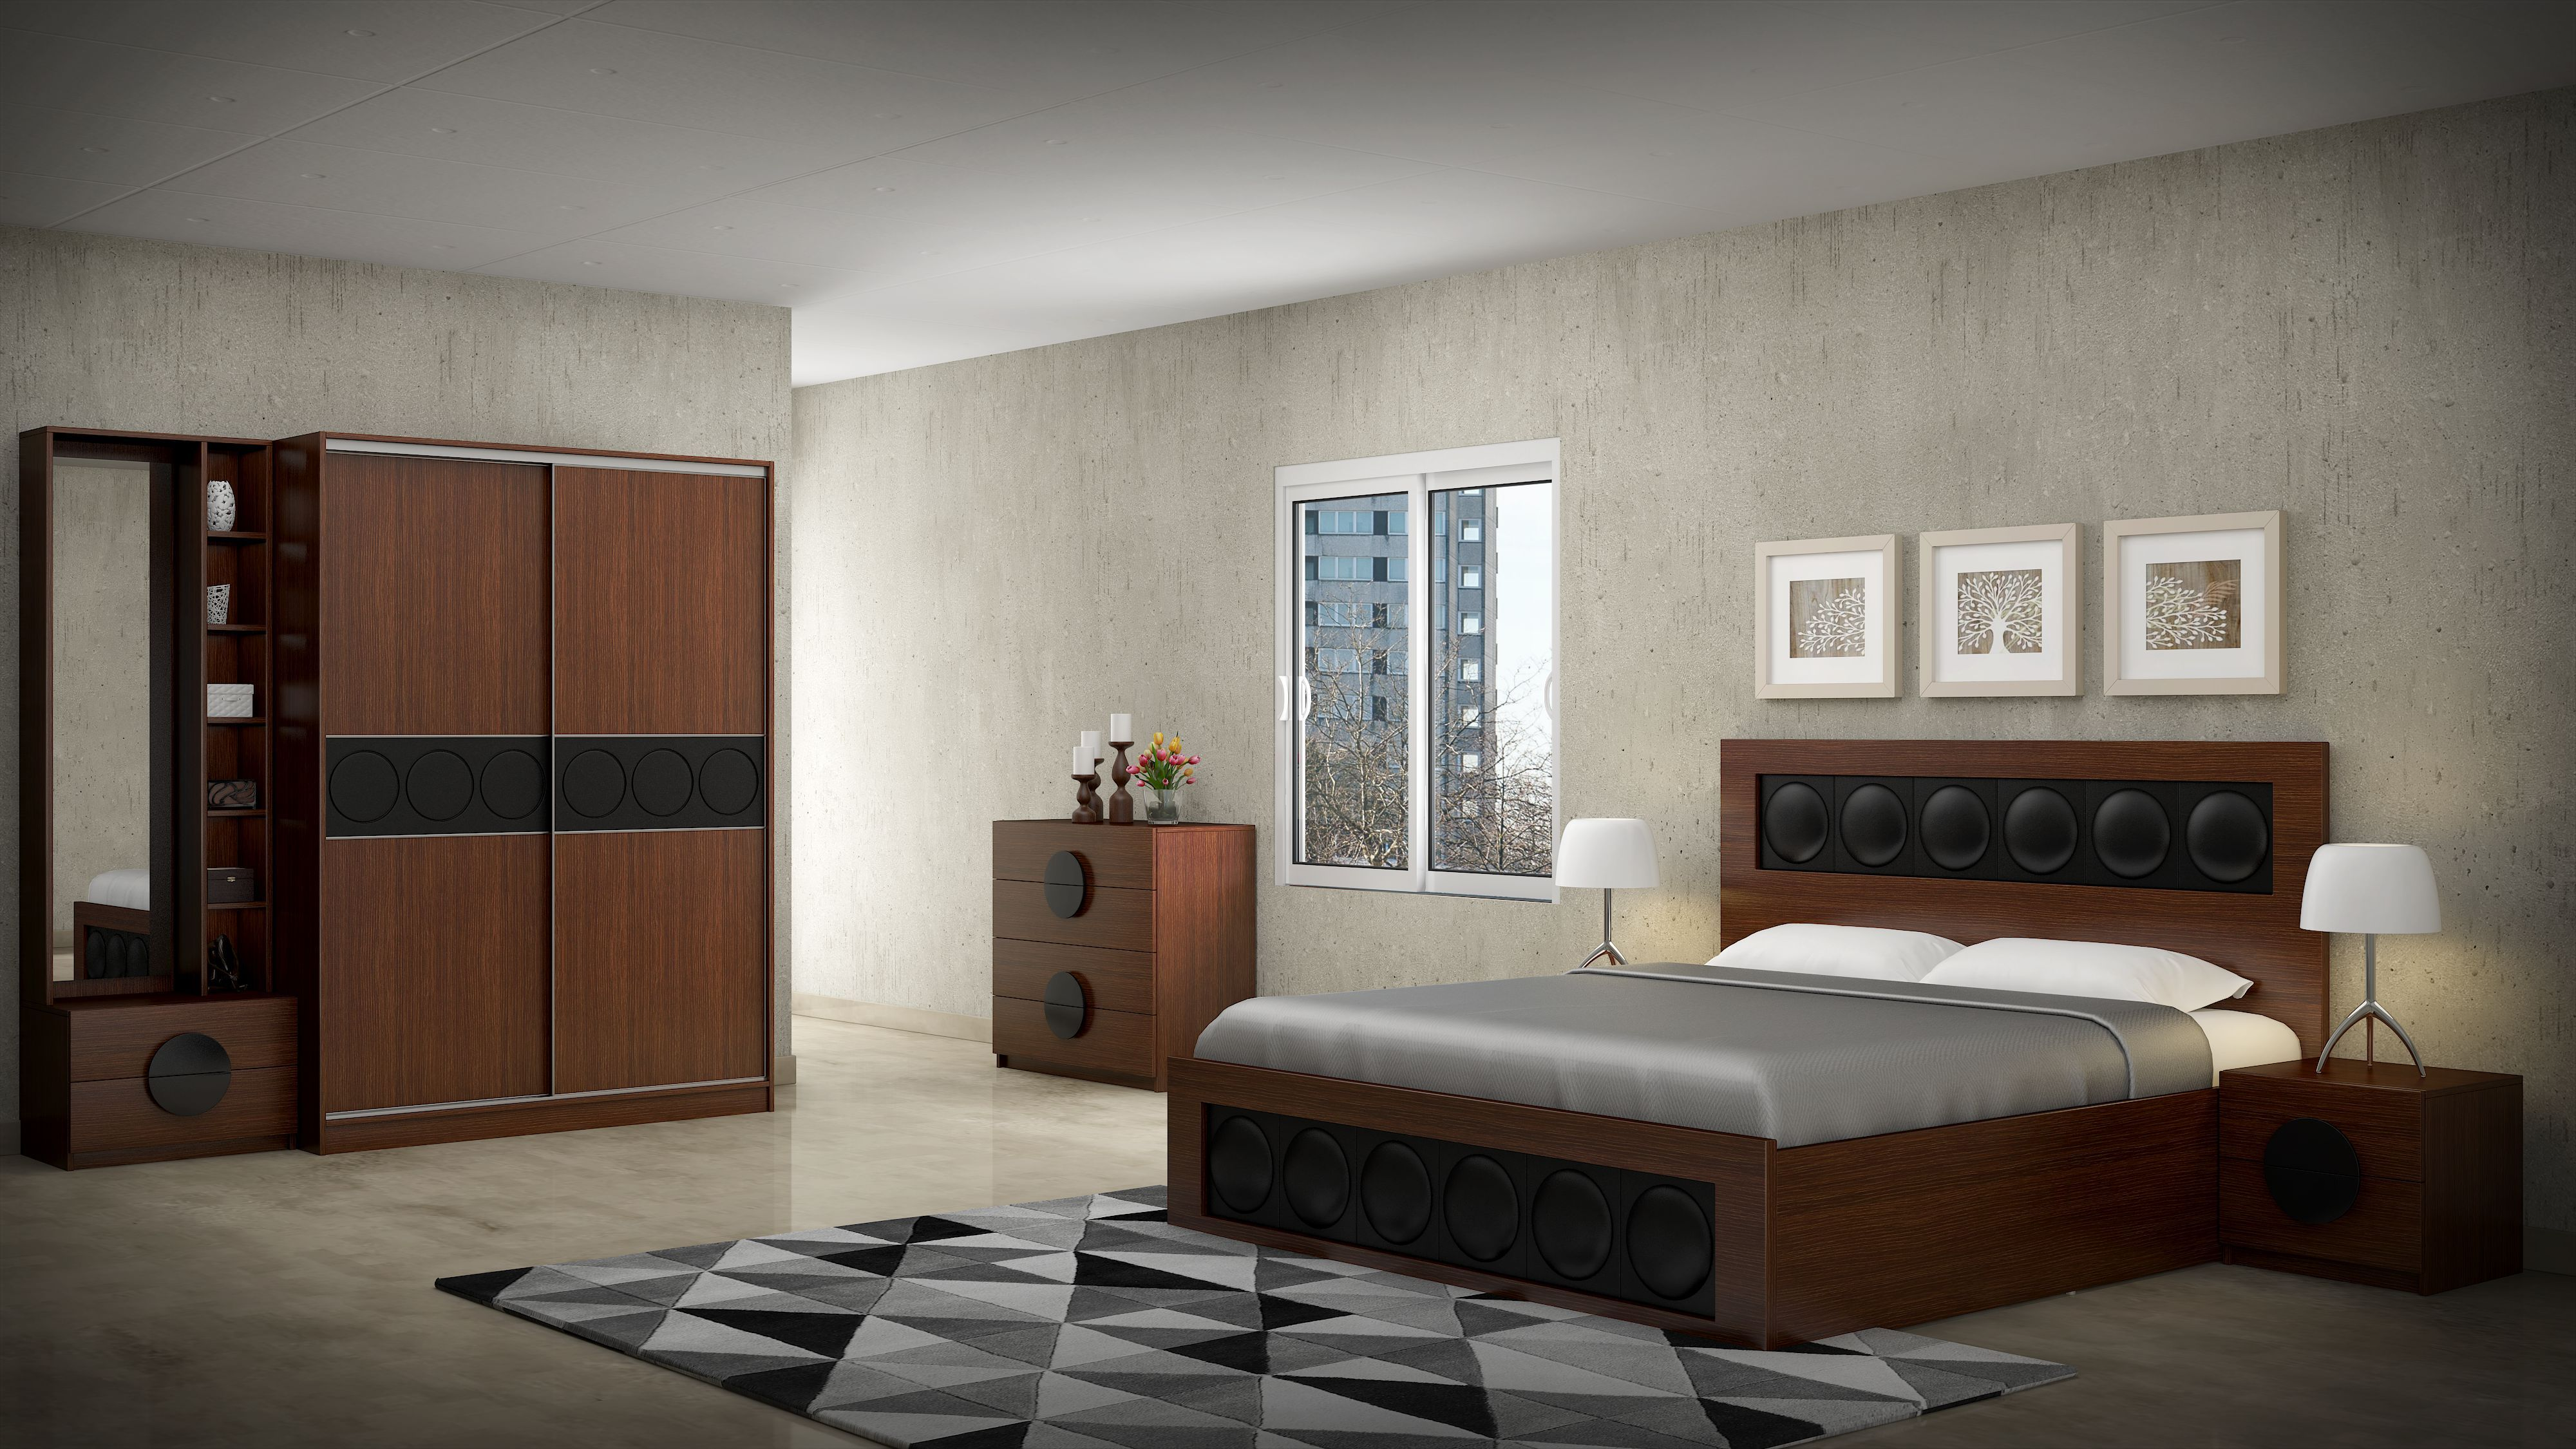 We Are A Total Solution Provider For A Modern Home Interior And More